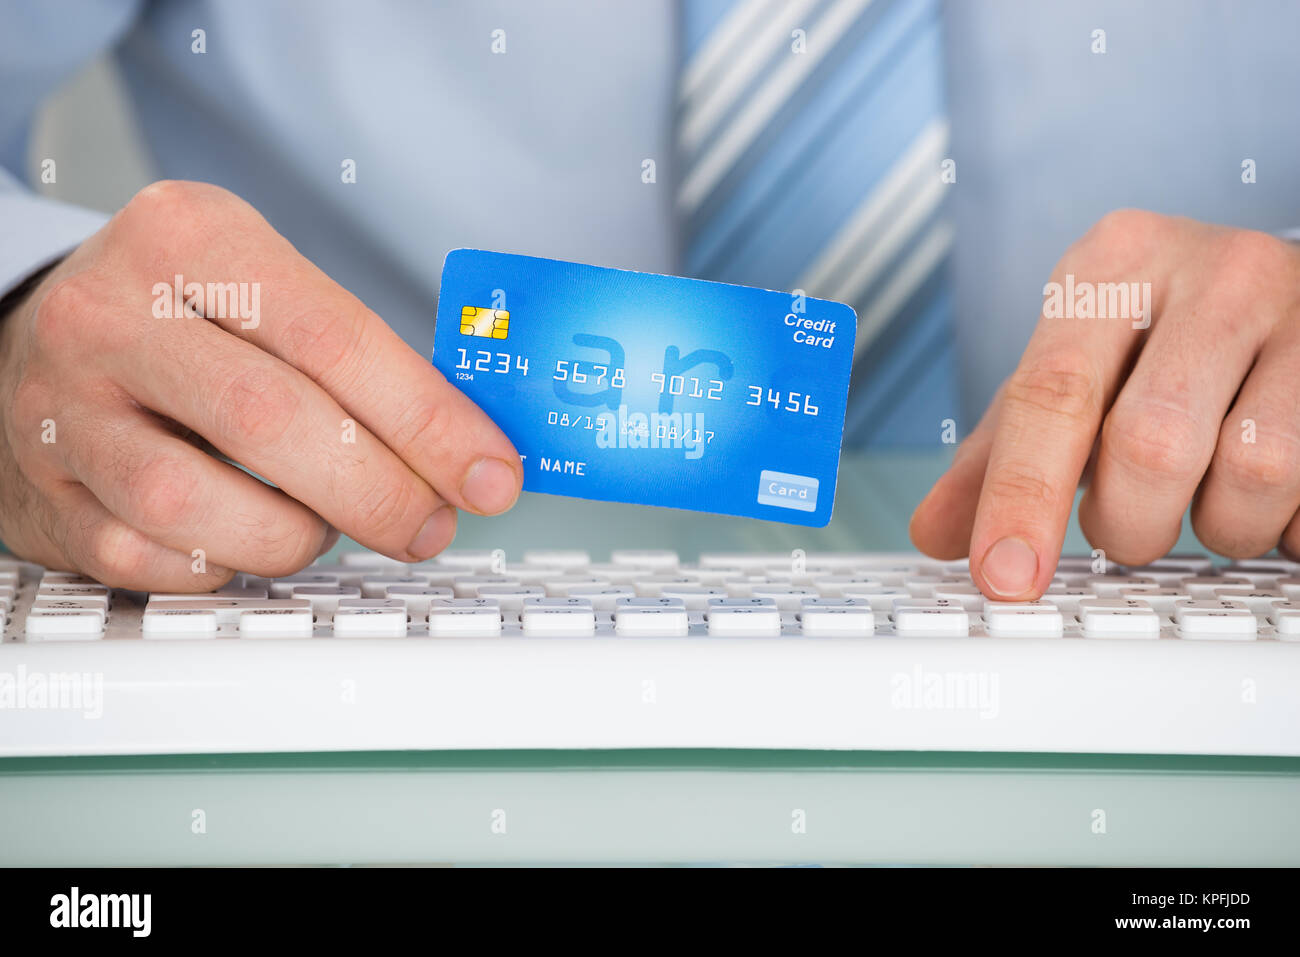 Businessperson With Credit Card And Keyboard - Stock Image